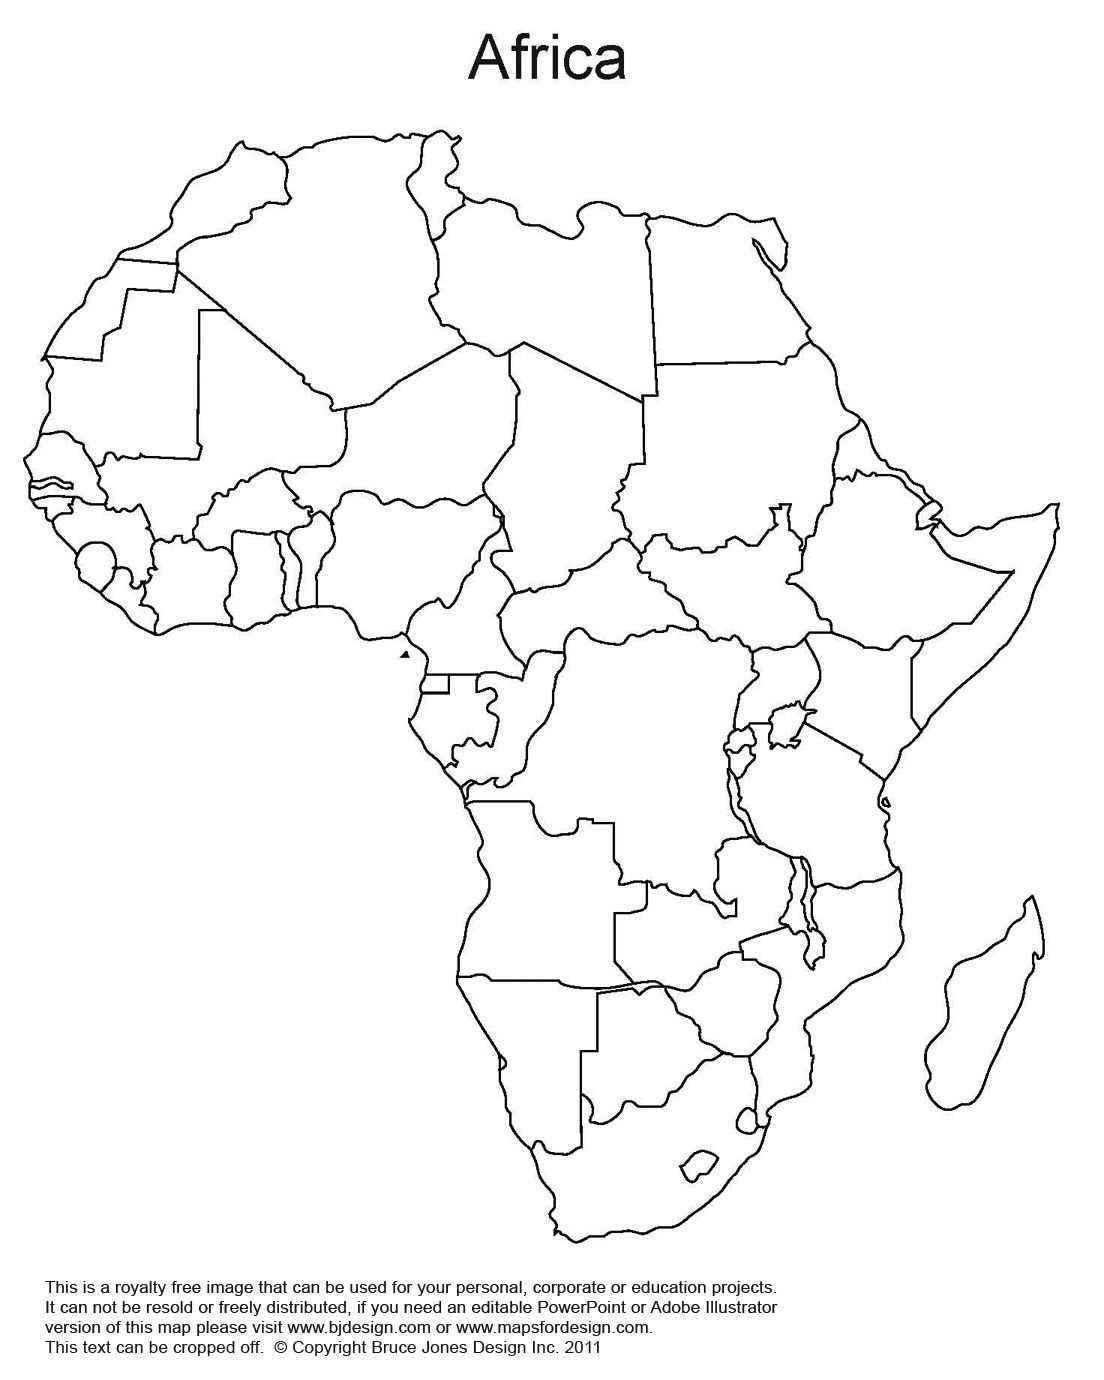 Printable map of africa africa world regional blank printable map printable map of africa africa world regional blank printable map outline map royalty free gumiabroncs Image collections